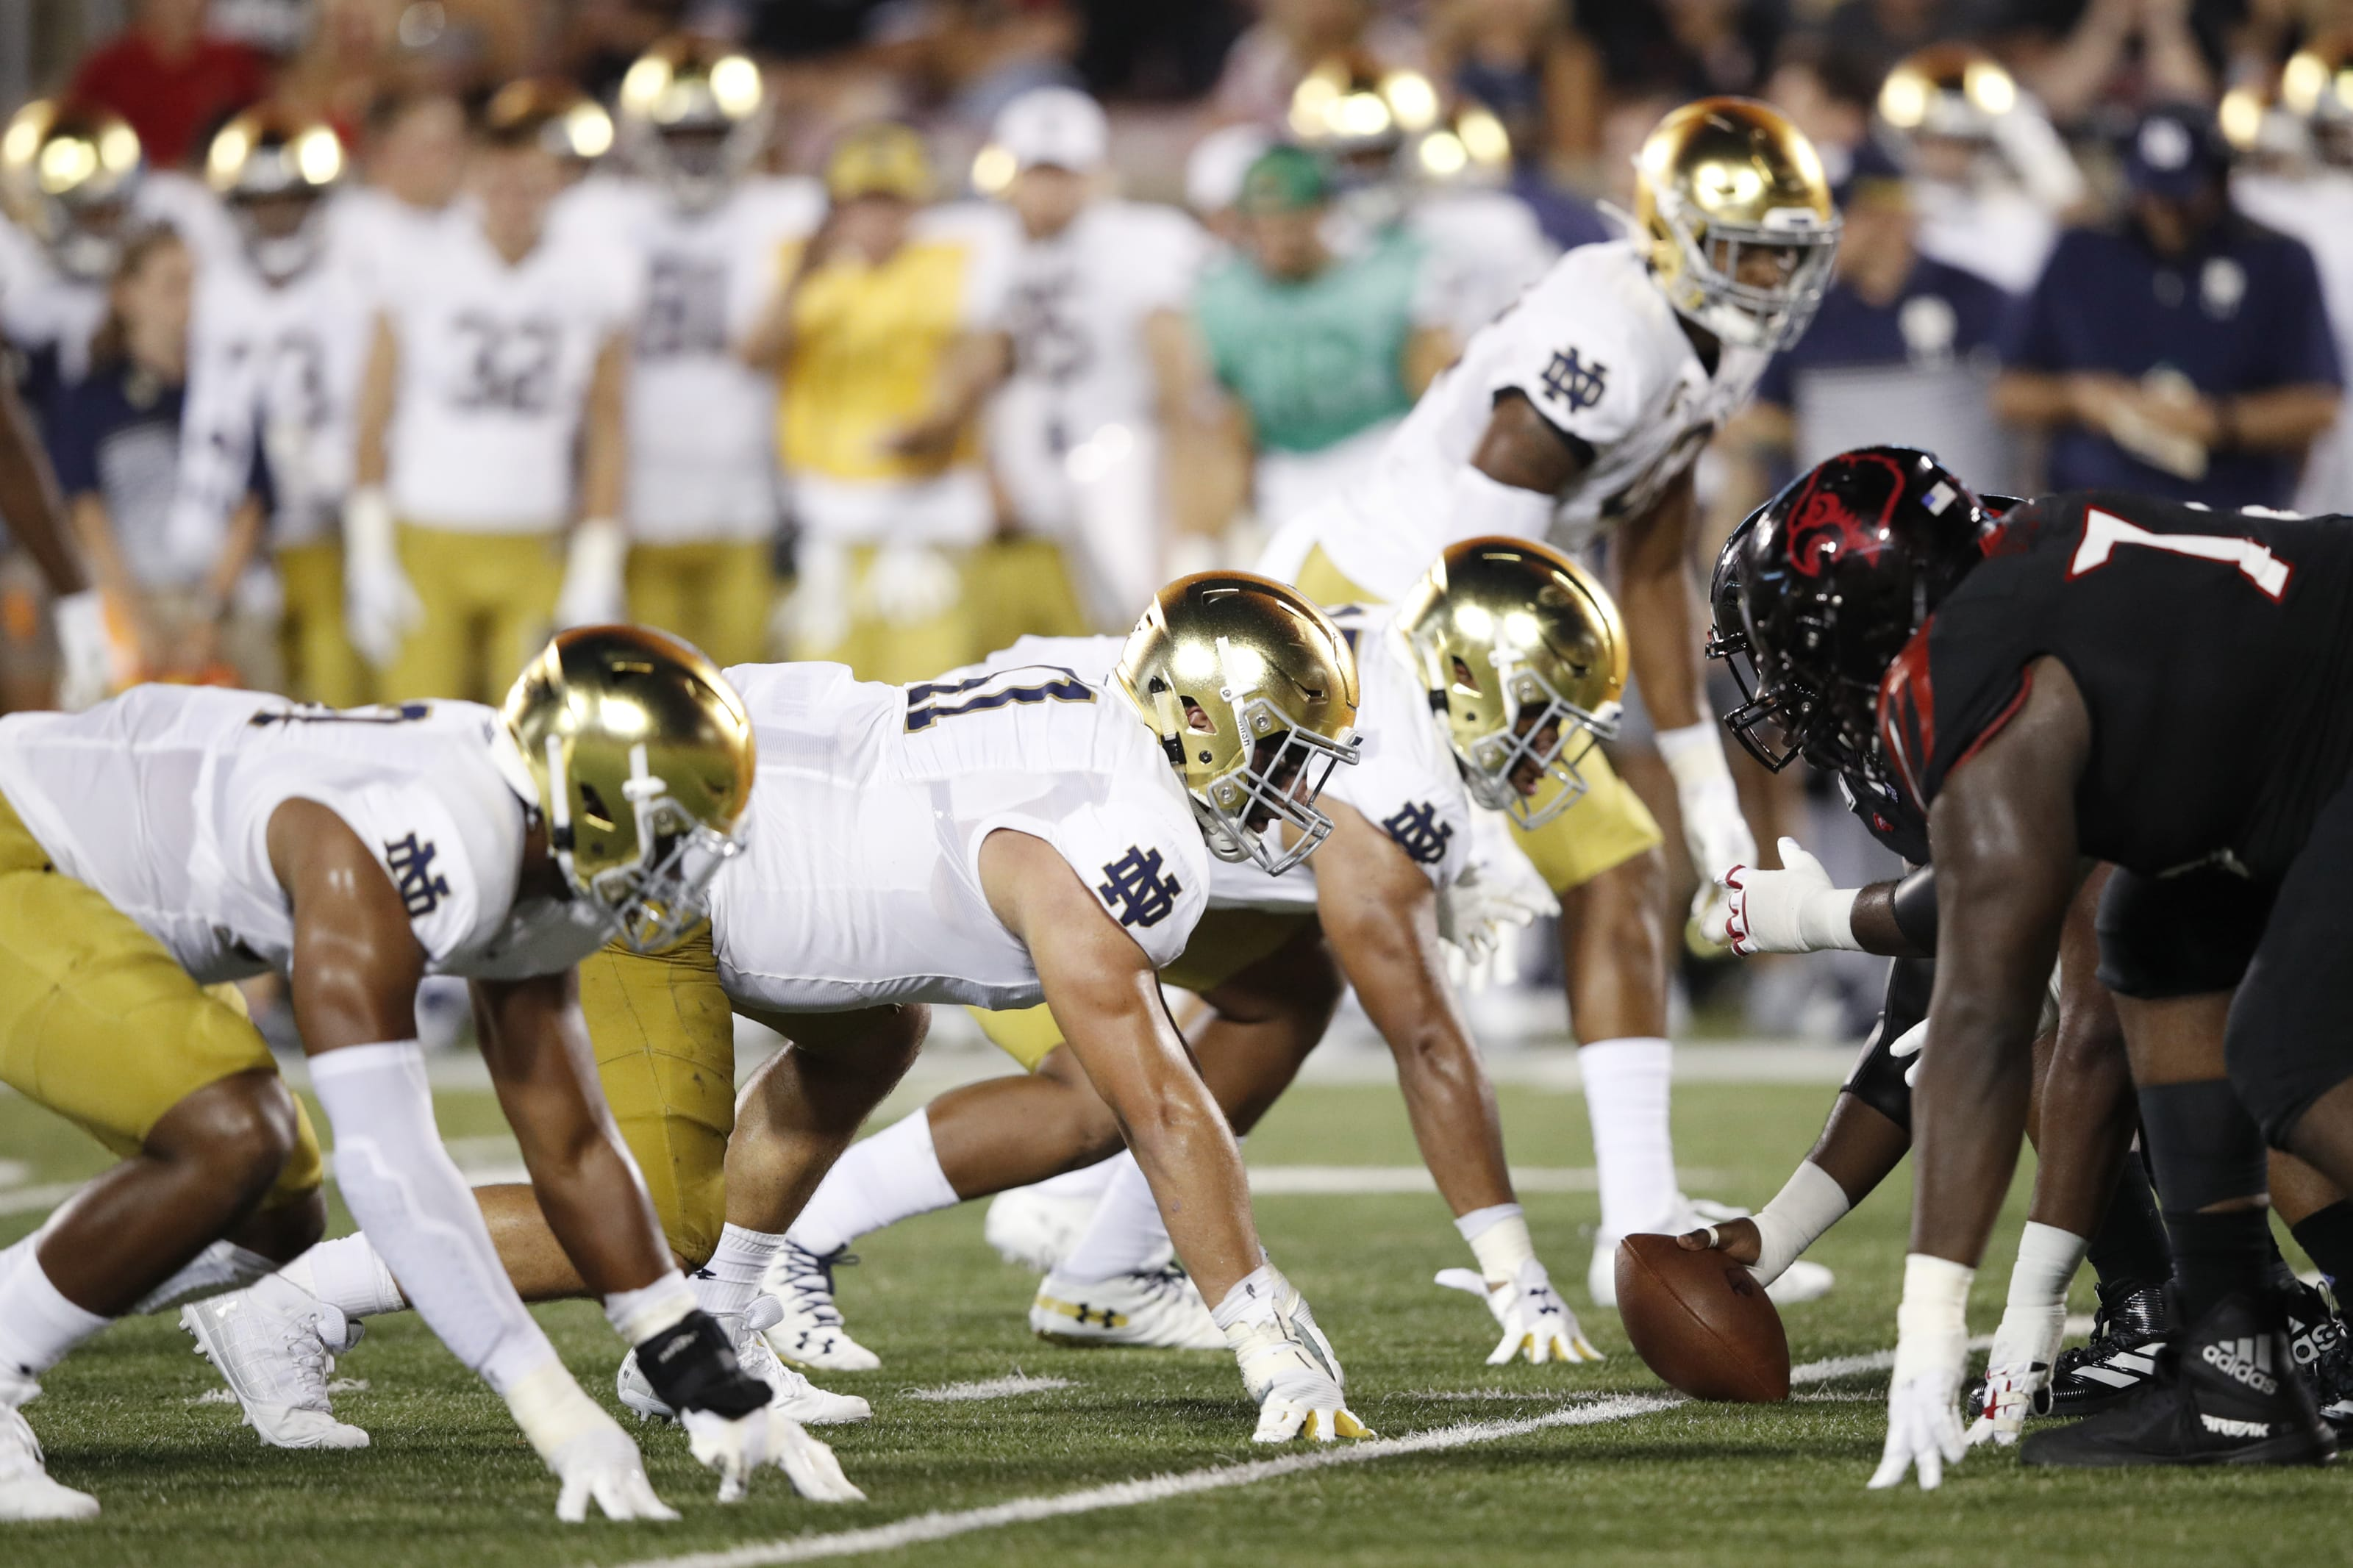 Notre Dame Football: Will 2020 circumstances inspire Irish to join ACC? -  Slap the Sign - A Notre Dame Fighting Irish Site - News, Blogs, Opinion and  more. - Page 3